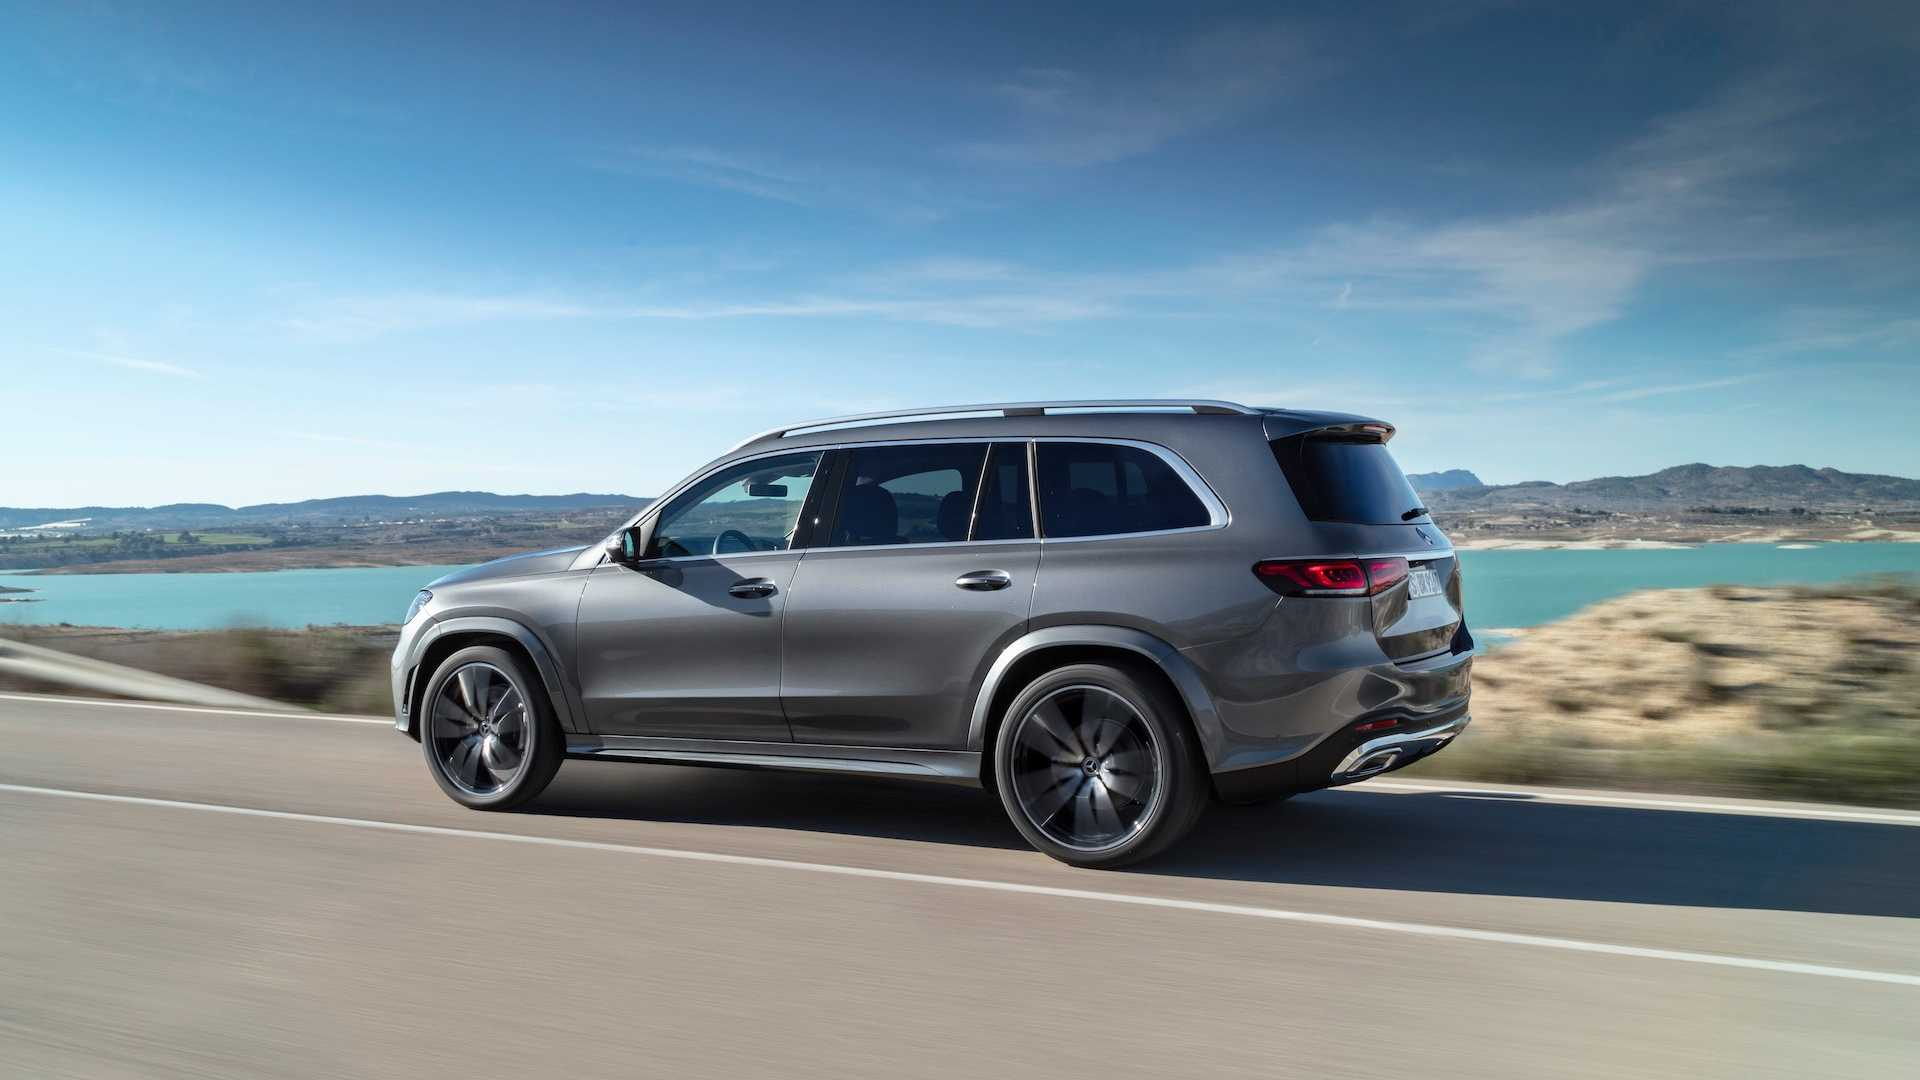 85 The Best 2020 Mercedes GLS Rumors